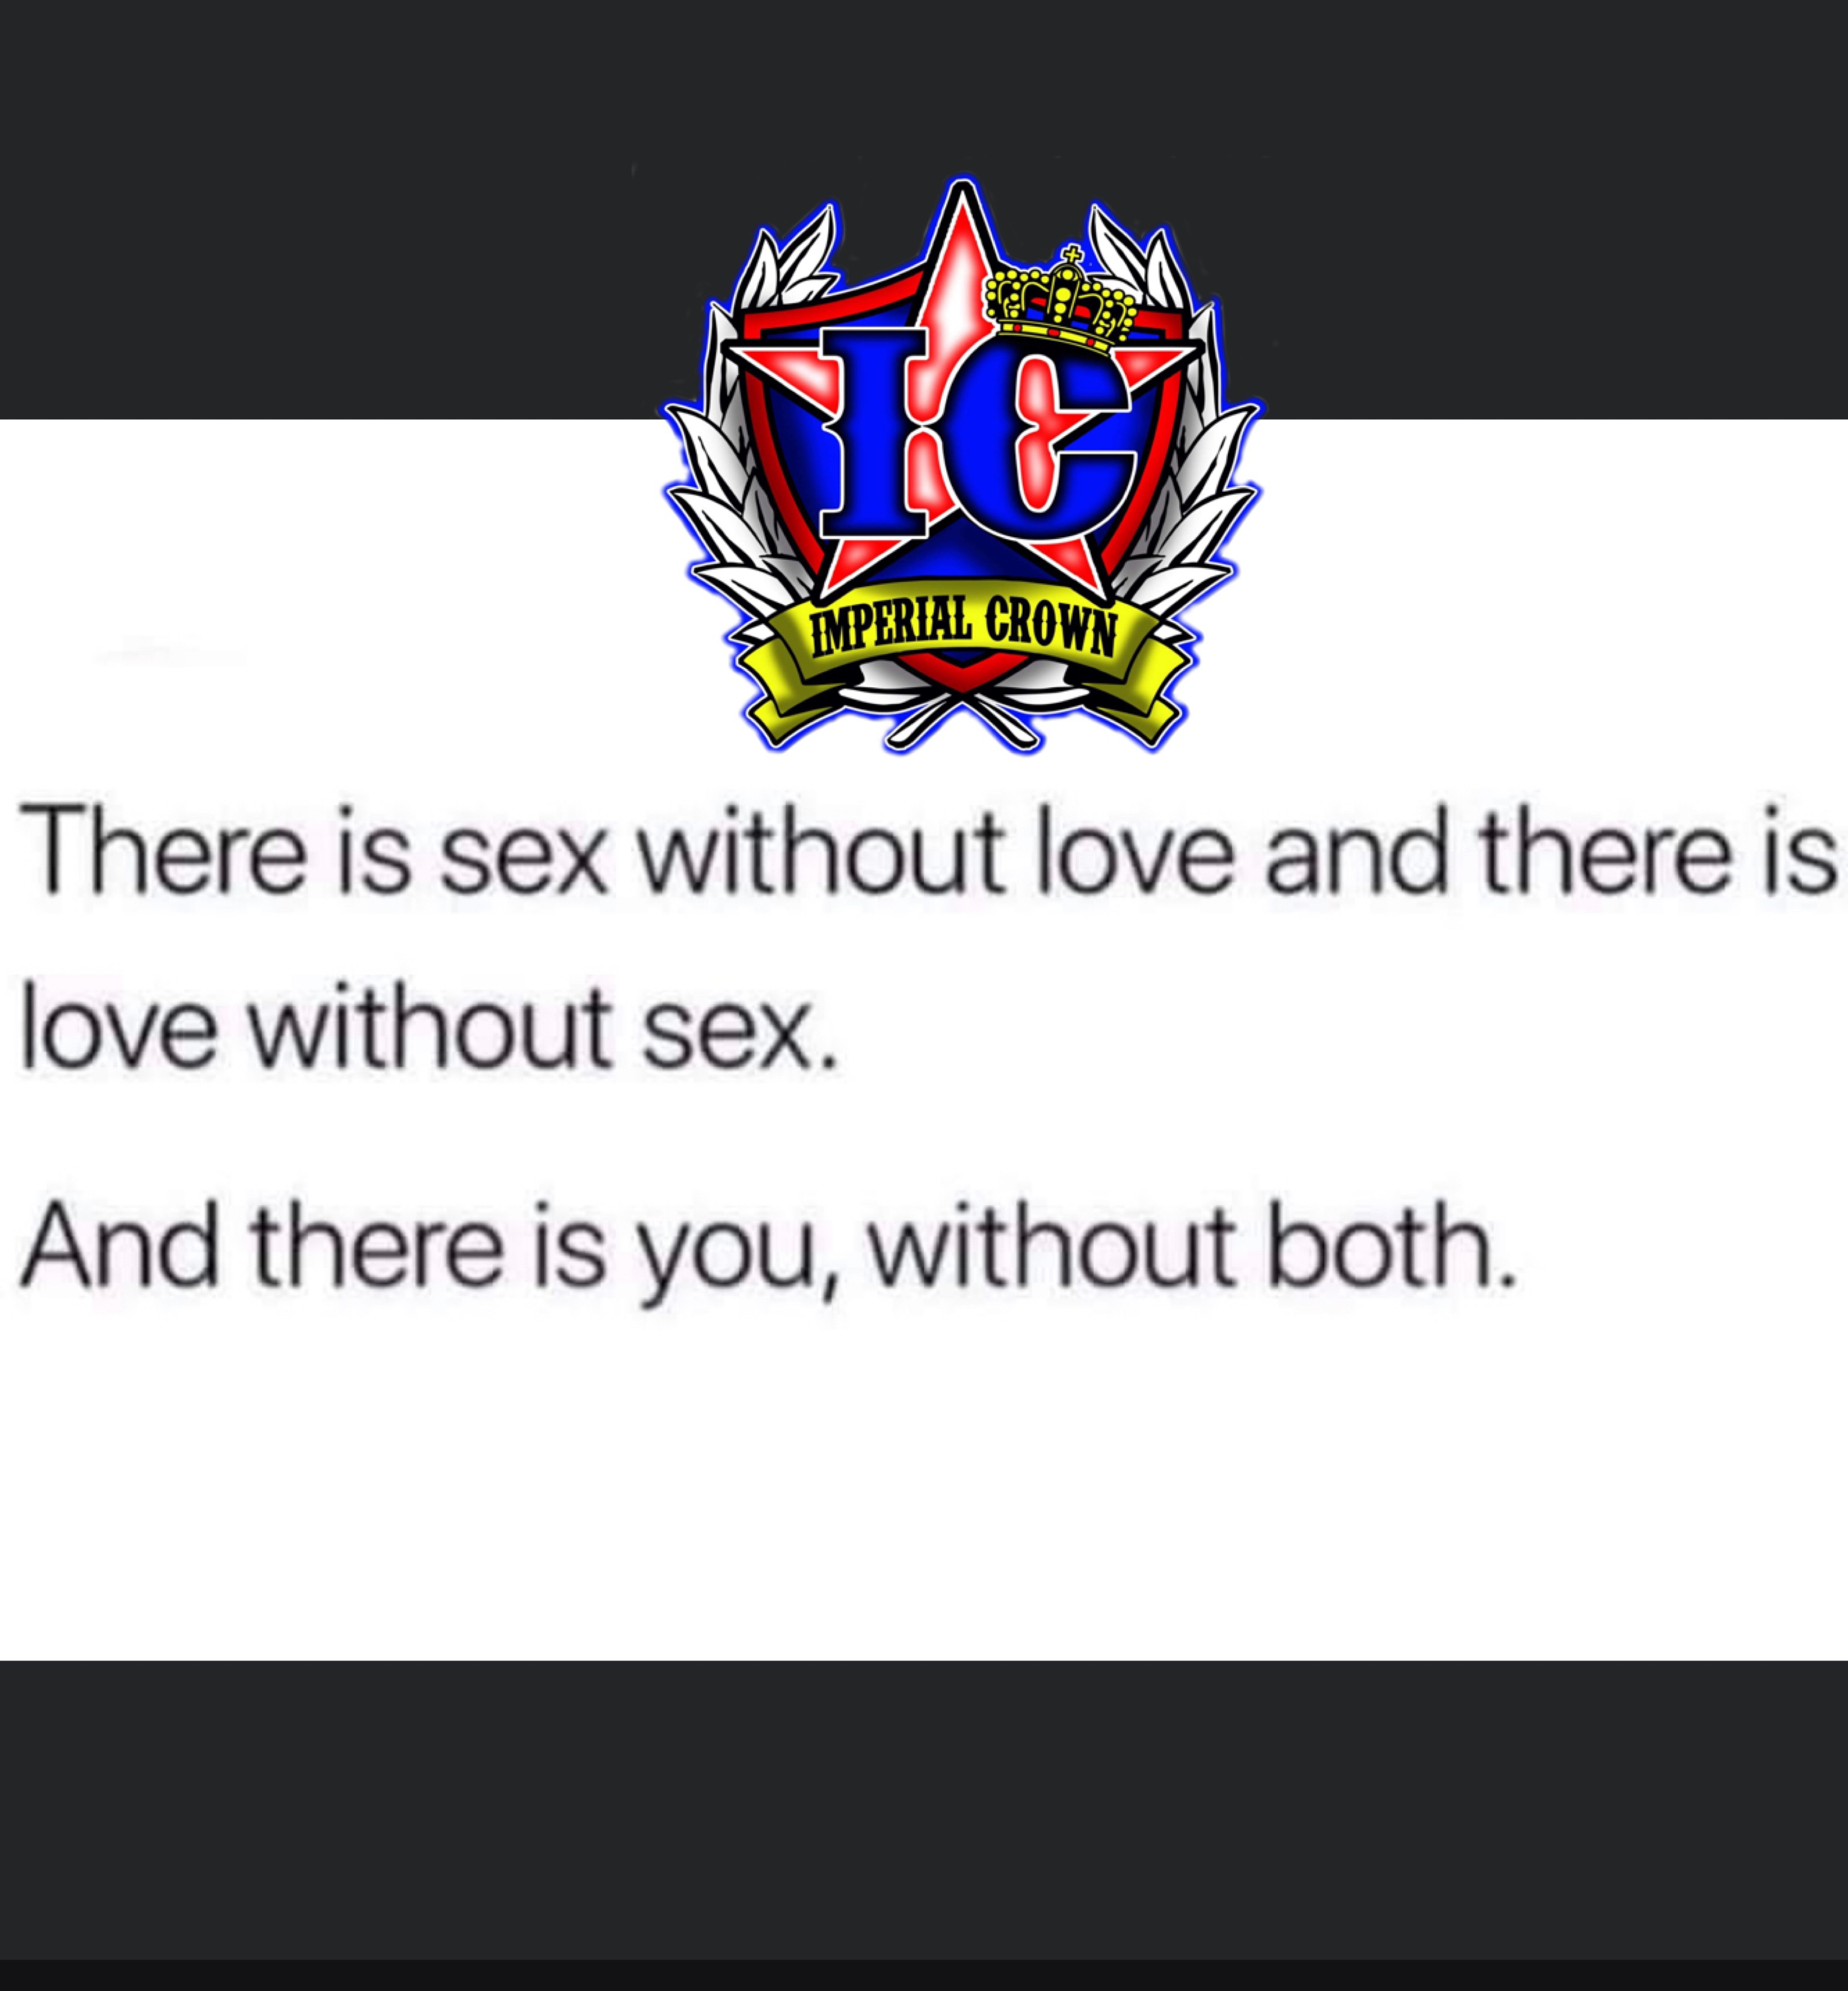 There is sex without love and there is love without sex